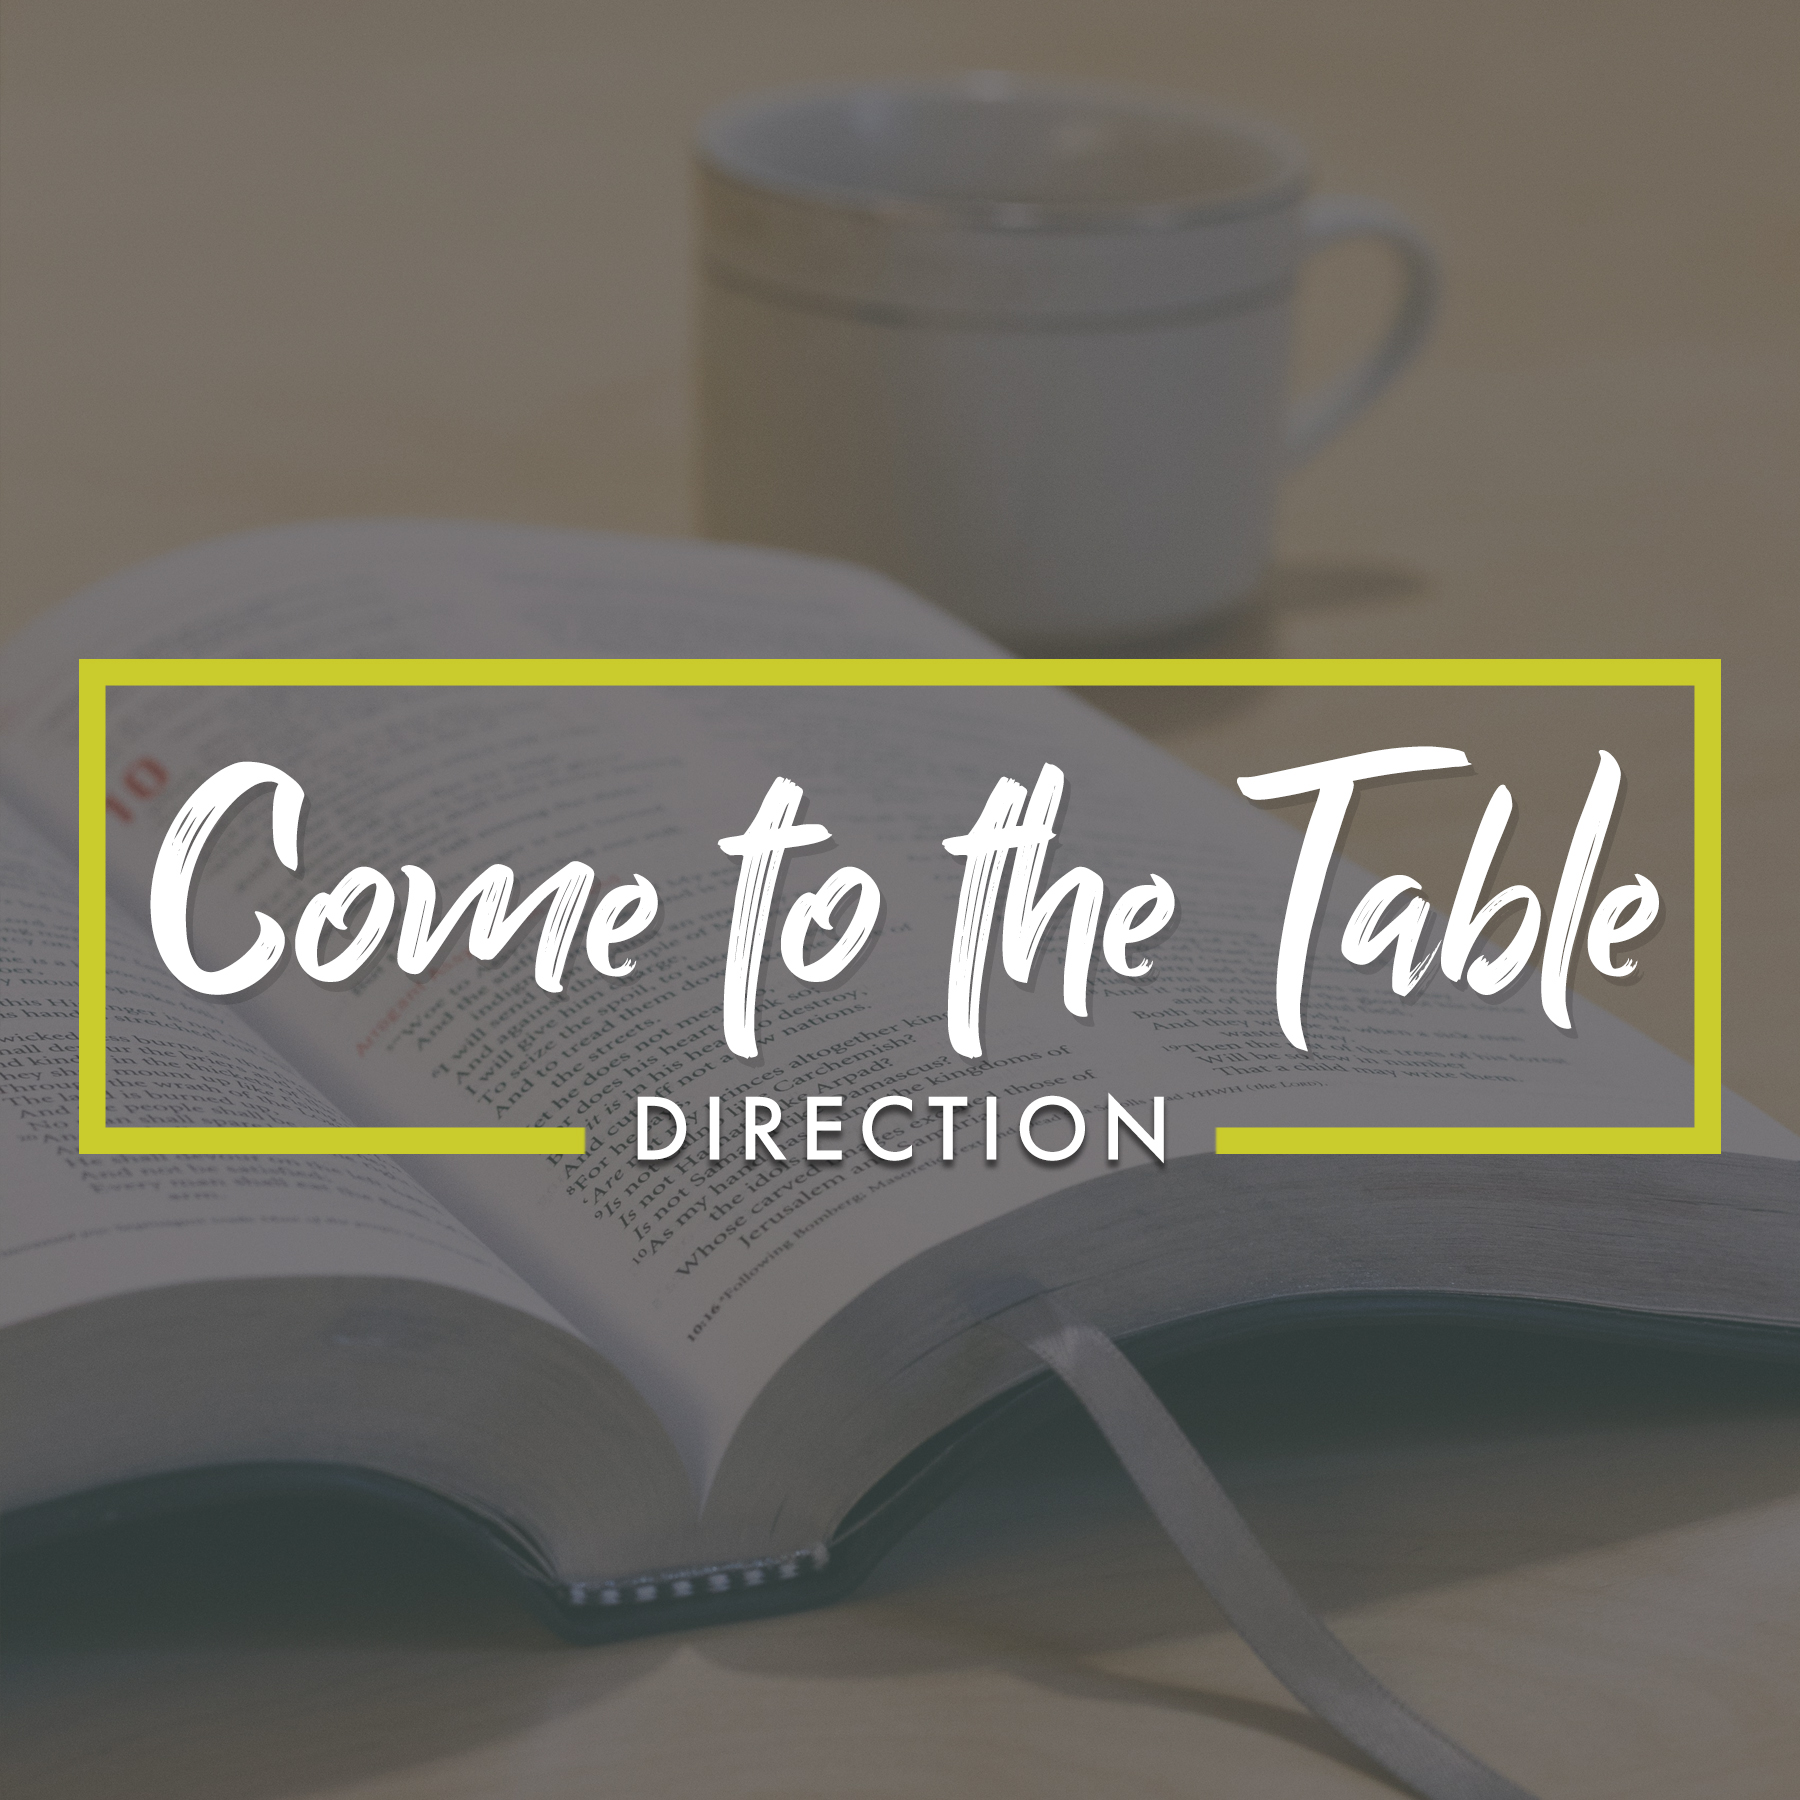 Come to the Table: Direction